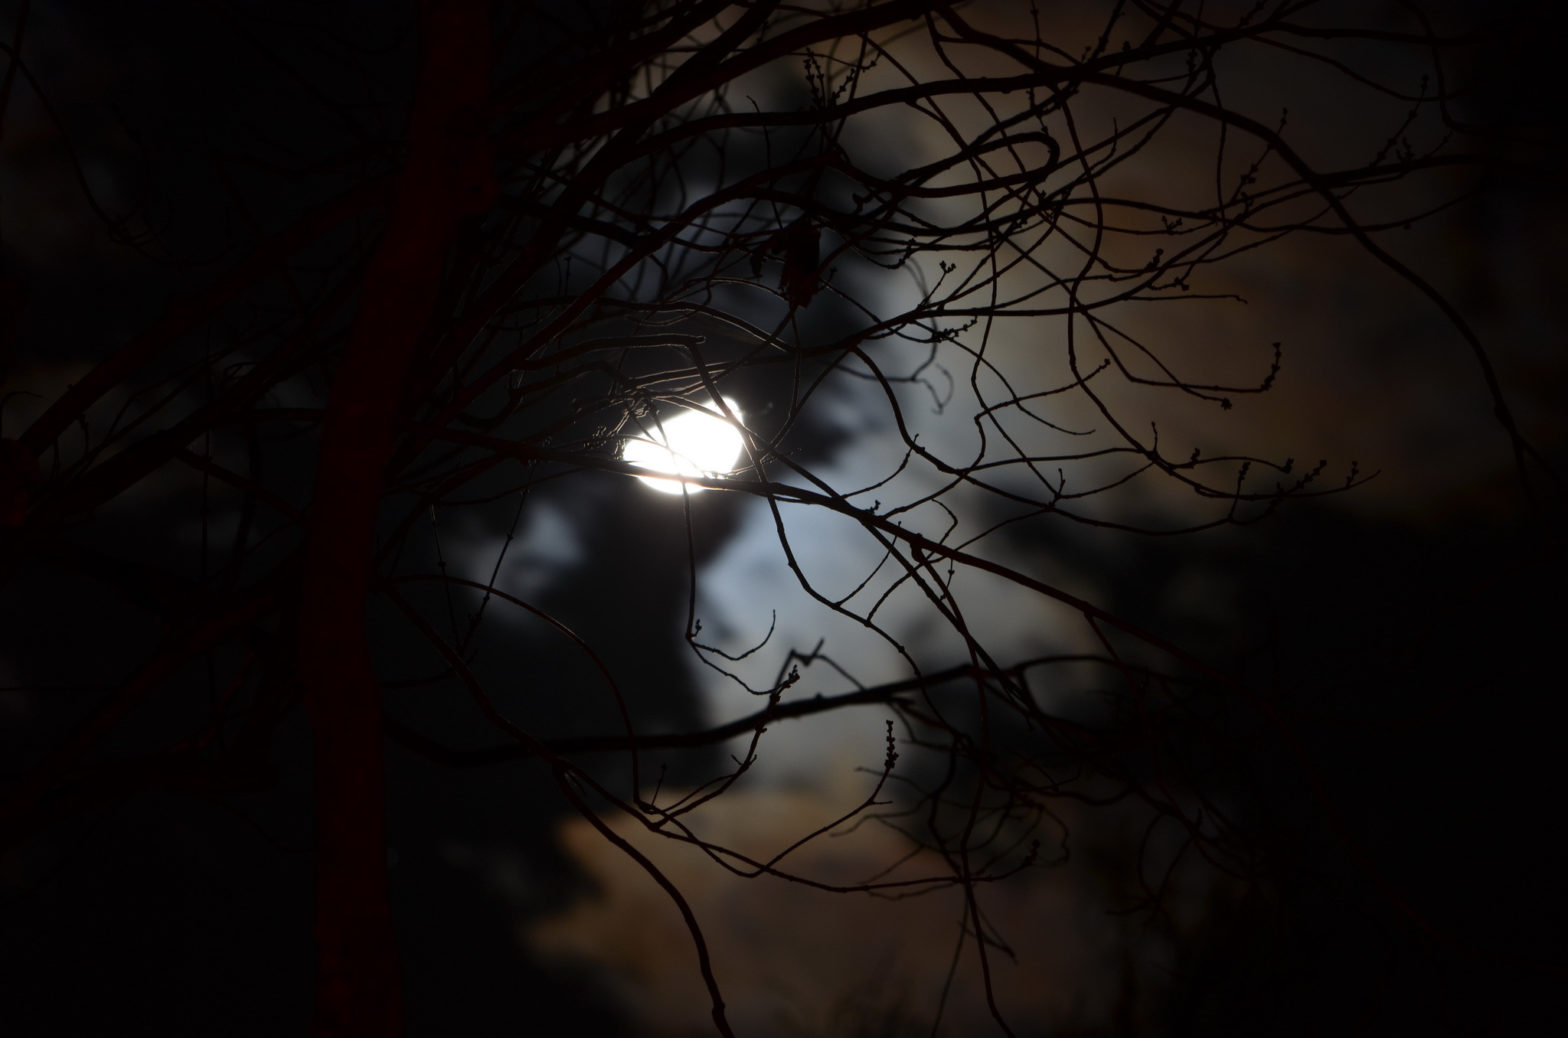 moonlight behind tree branches